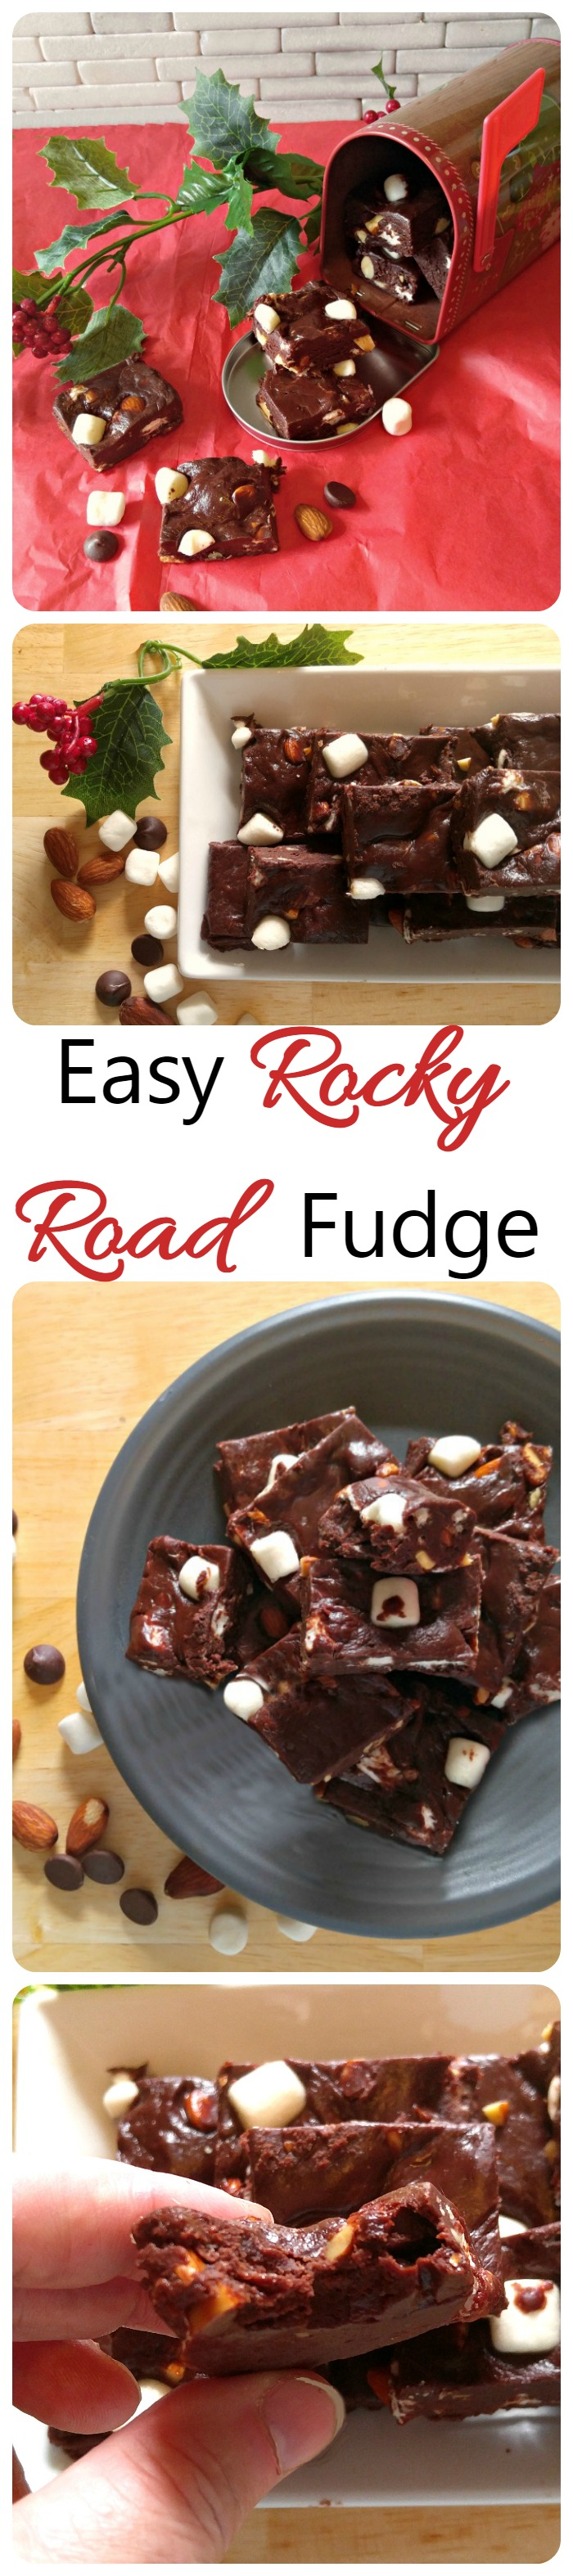 Rocky Road Fudge - A Holiday Treat